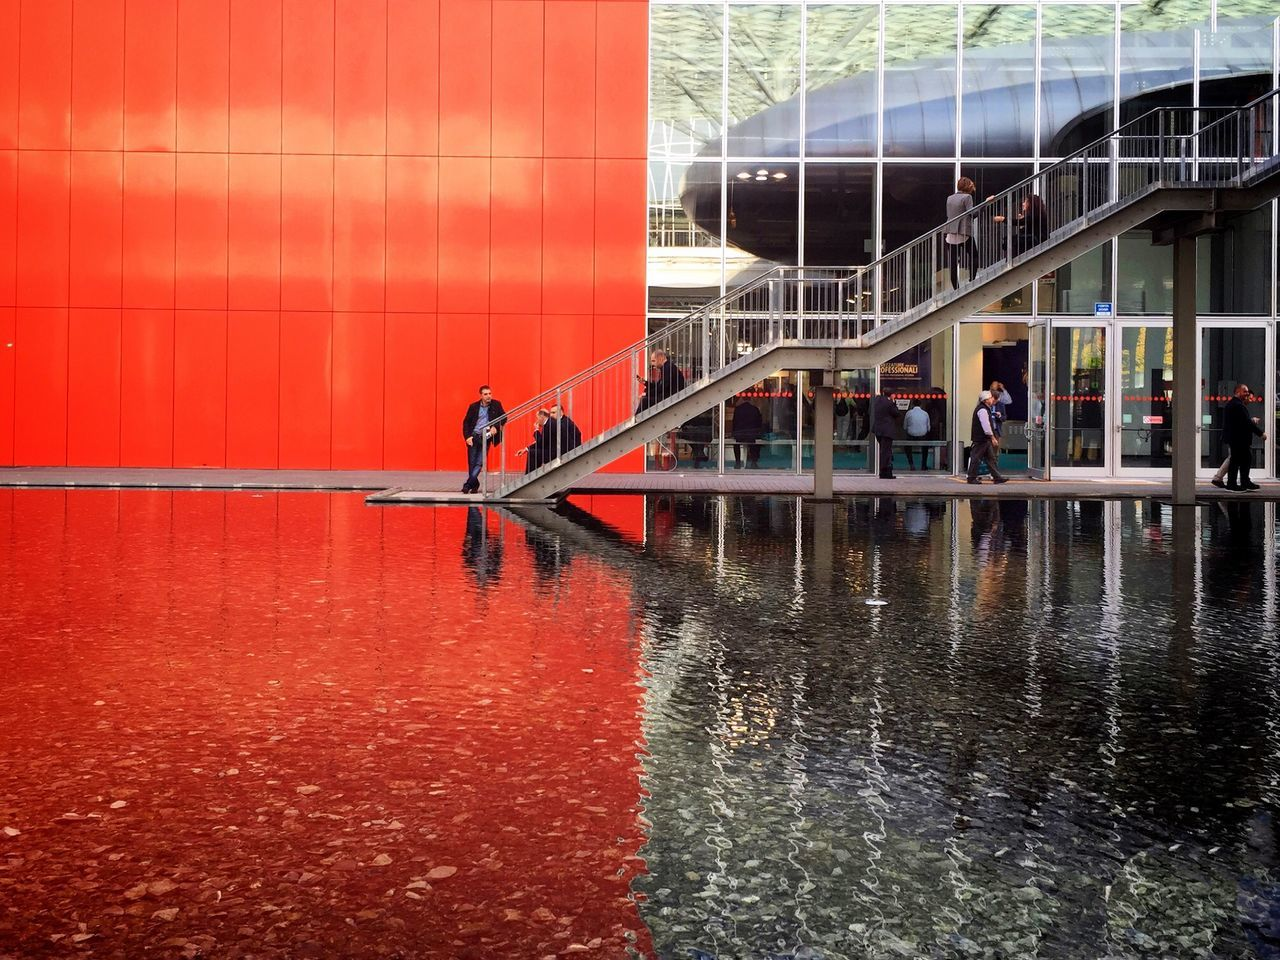 Architecture Red Fieramilano Water Reflections From My Point Of View IPhoneography Capture The Moment Coloursplash Red And Grey IPS2015Color IPS2015Water IPS2015Architecture Better Look Twice Colors and patterns Minimalist Architecture